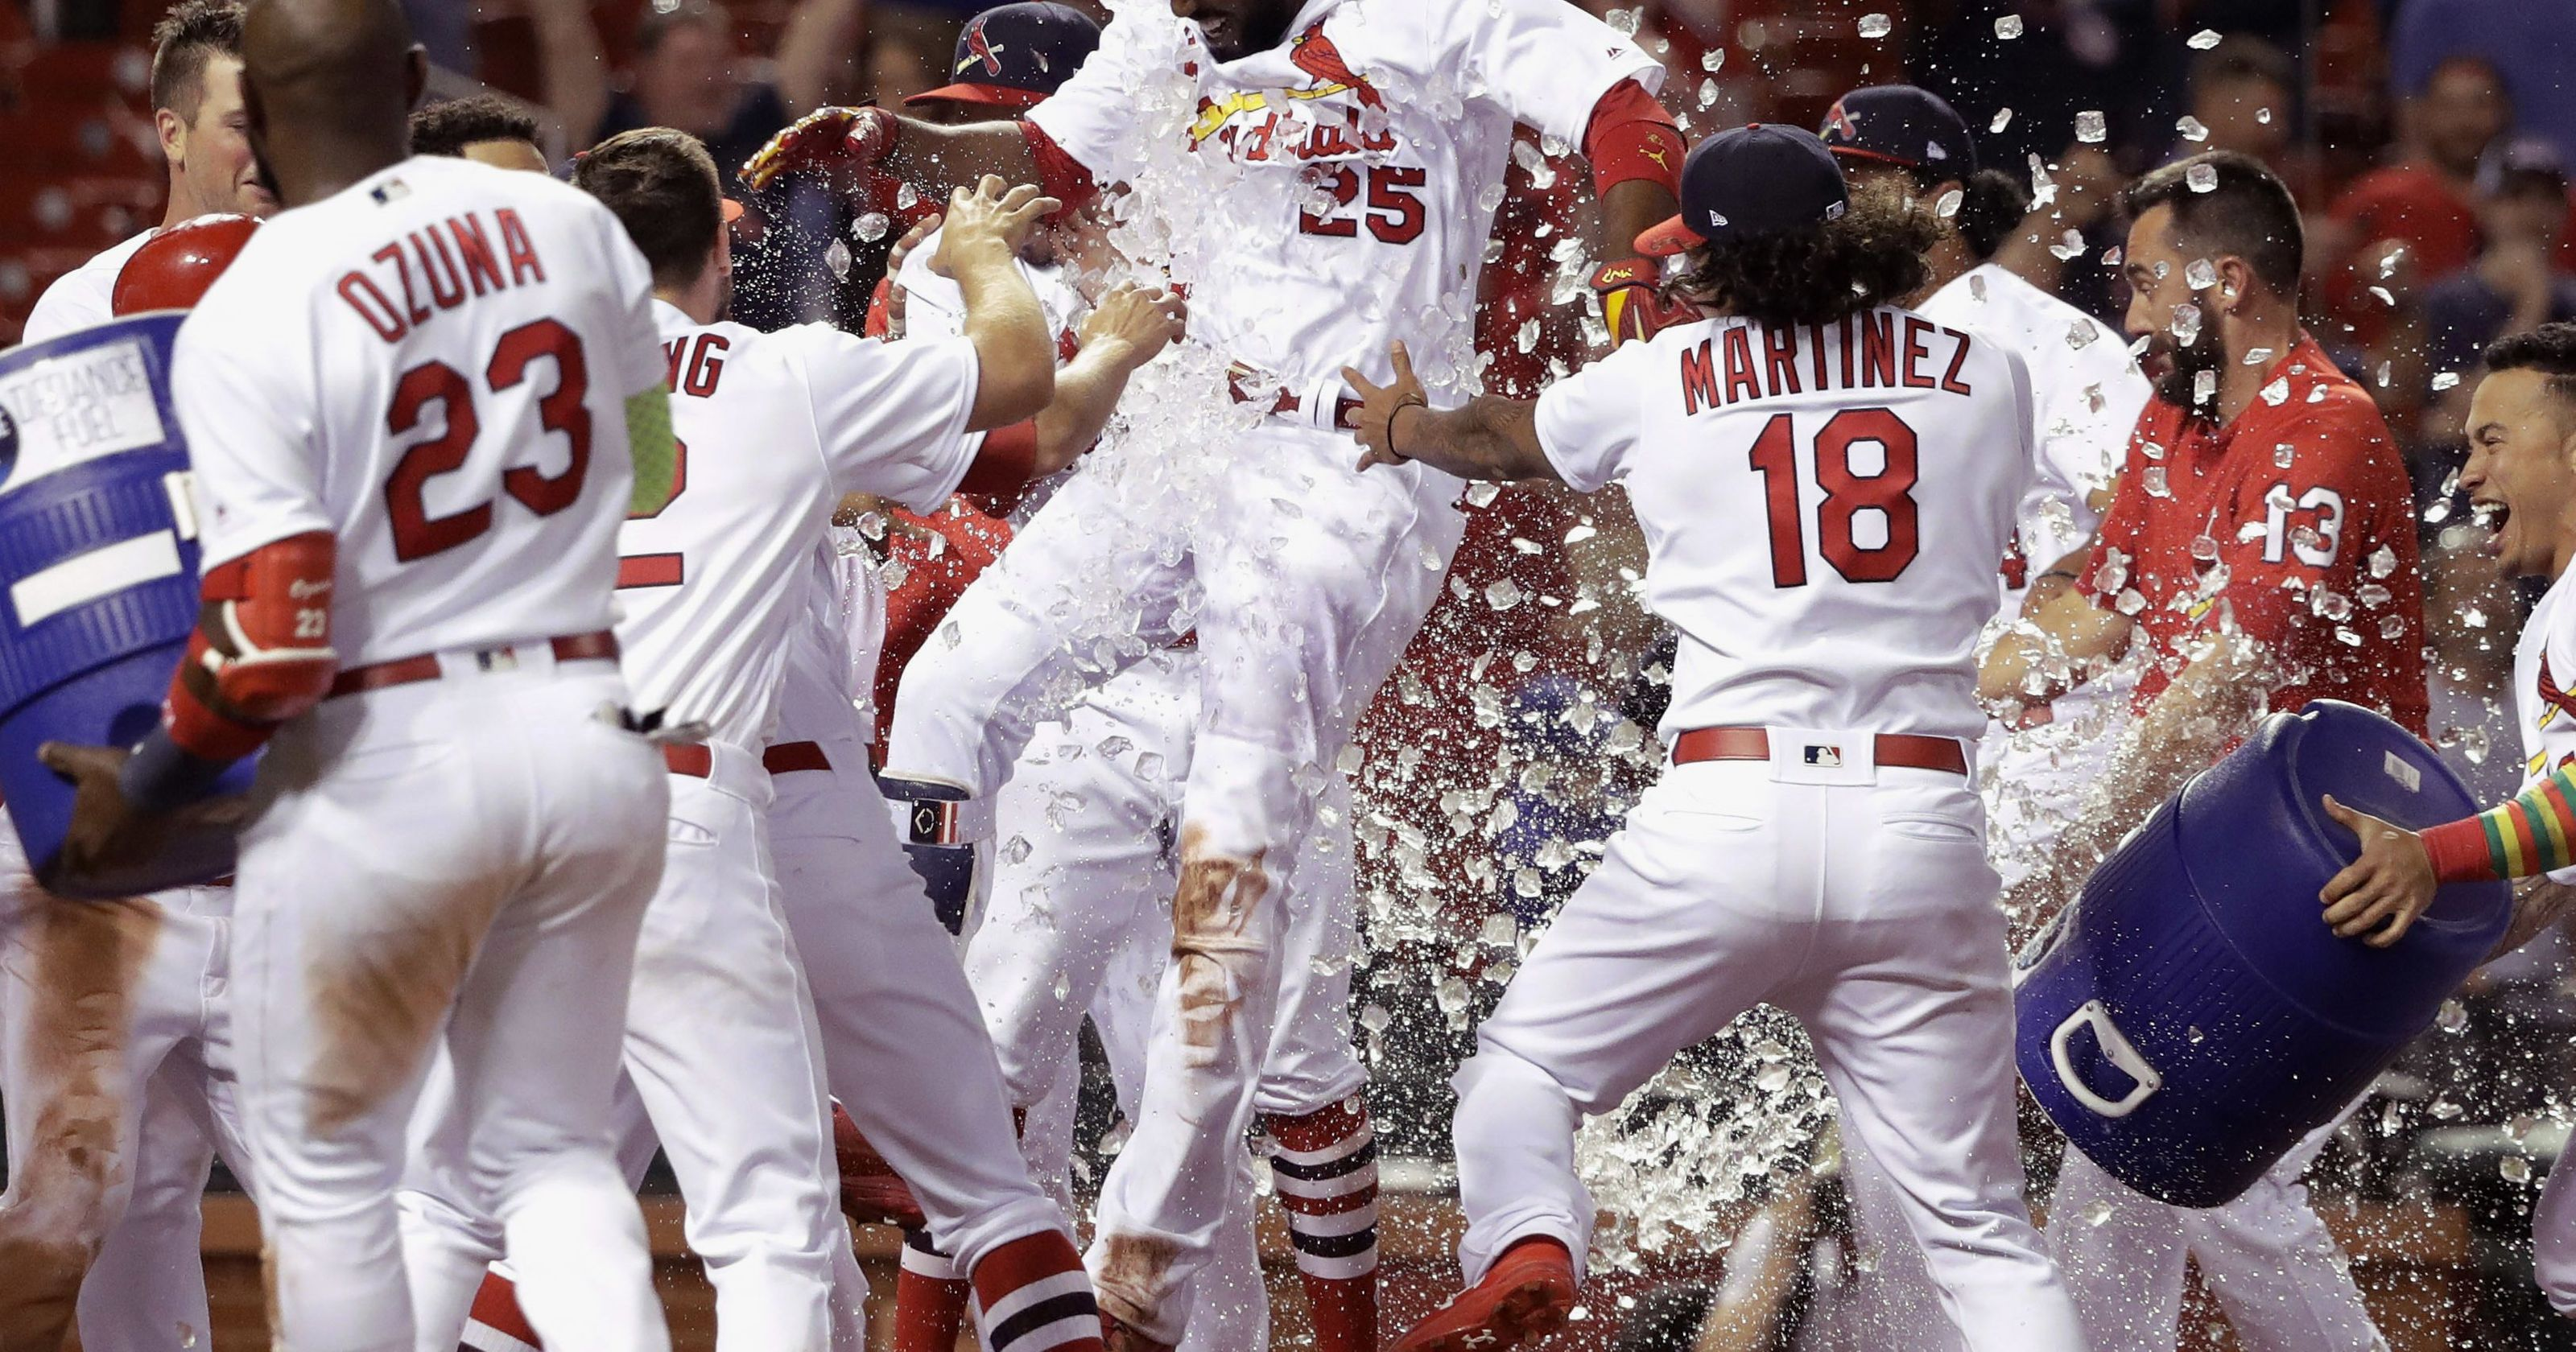 St. Louis Cardinals 2018: Rating the Walkoff Wins